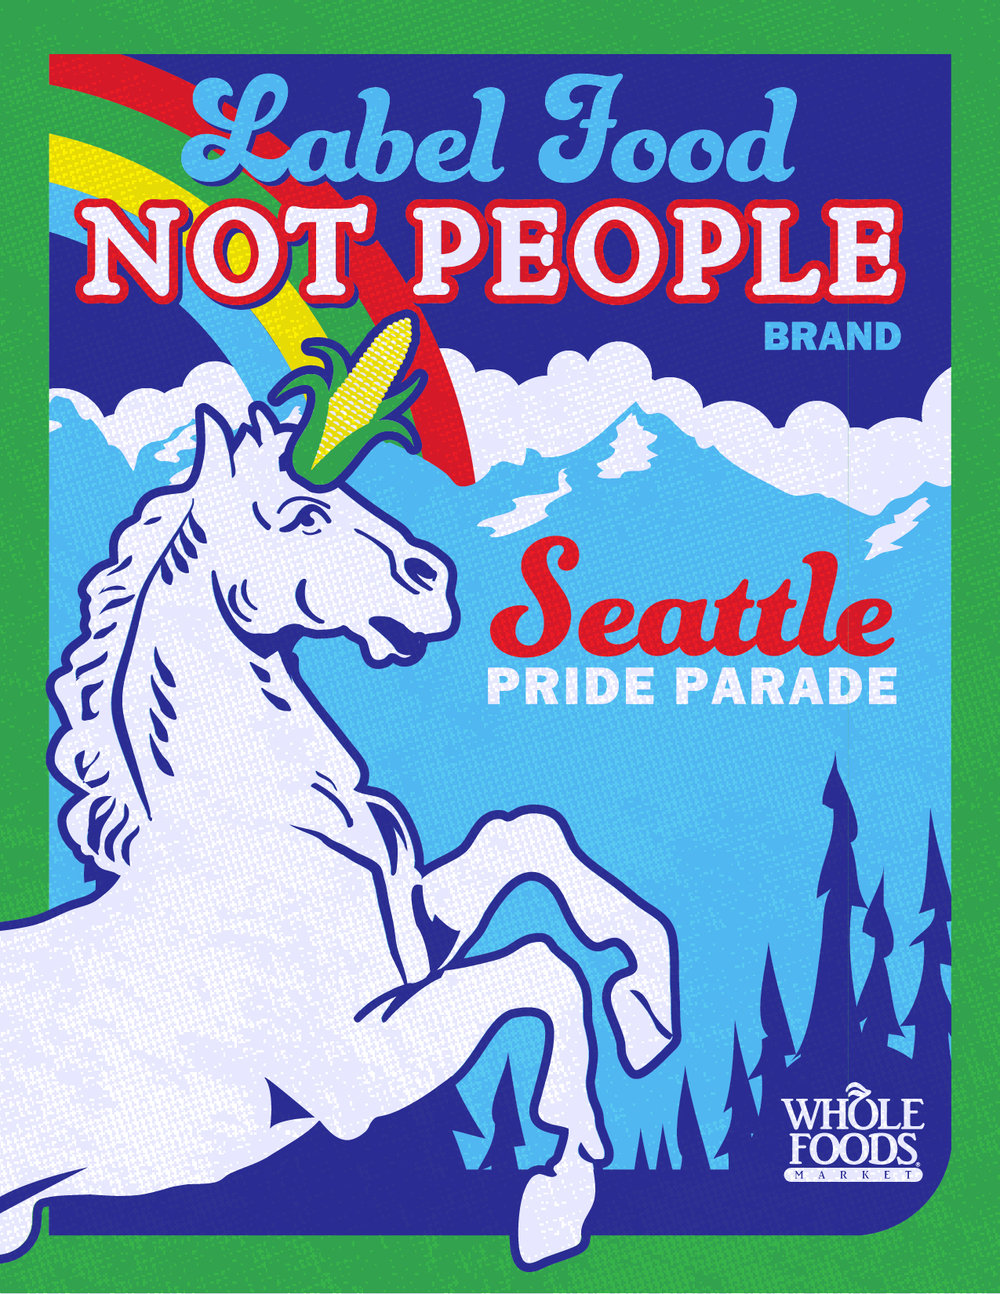 wfm seattle pride branding  Digital illustration that became the base for the Whole Foods Market branding for Seattle Pride Festival